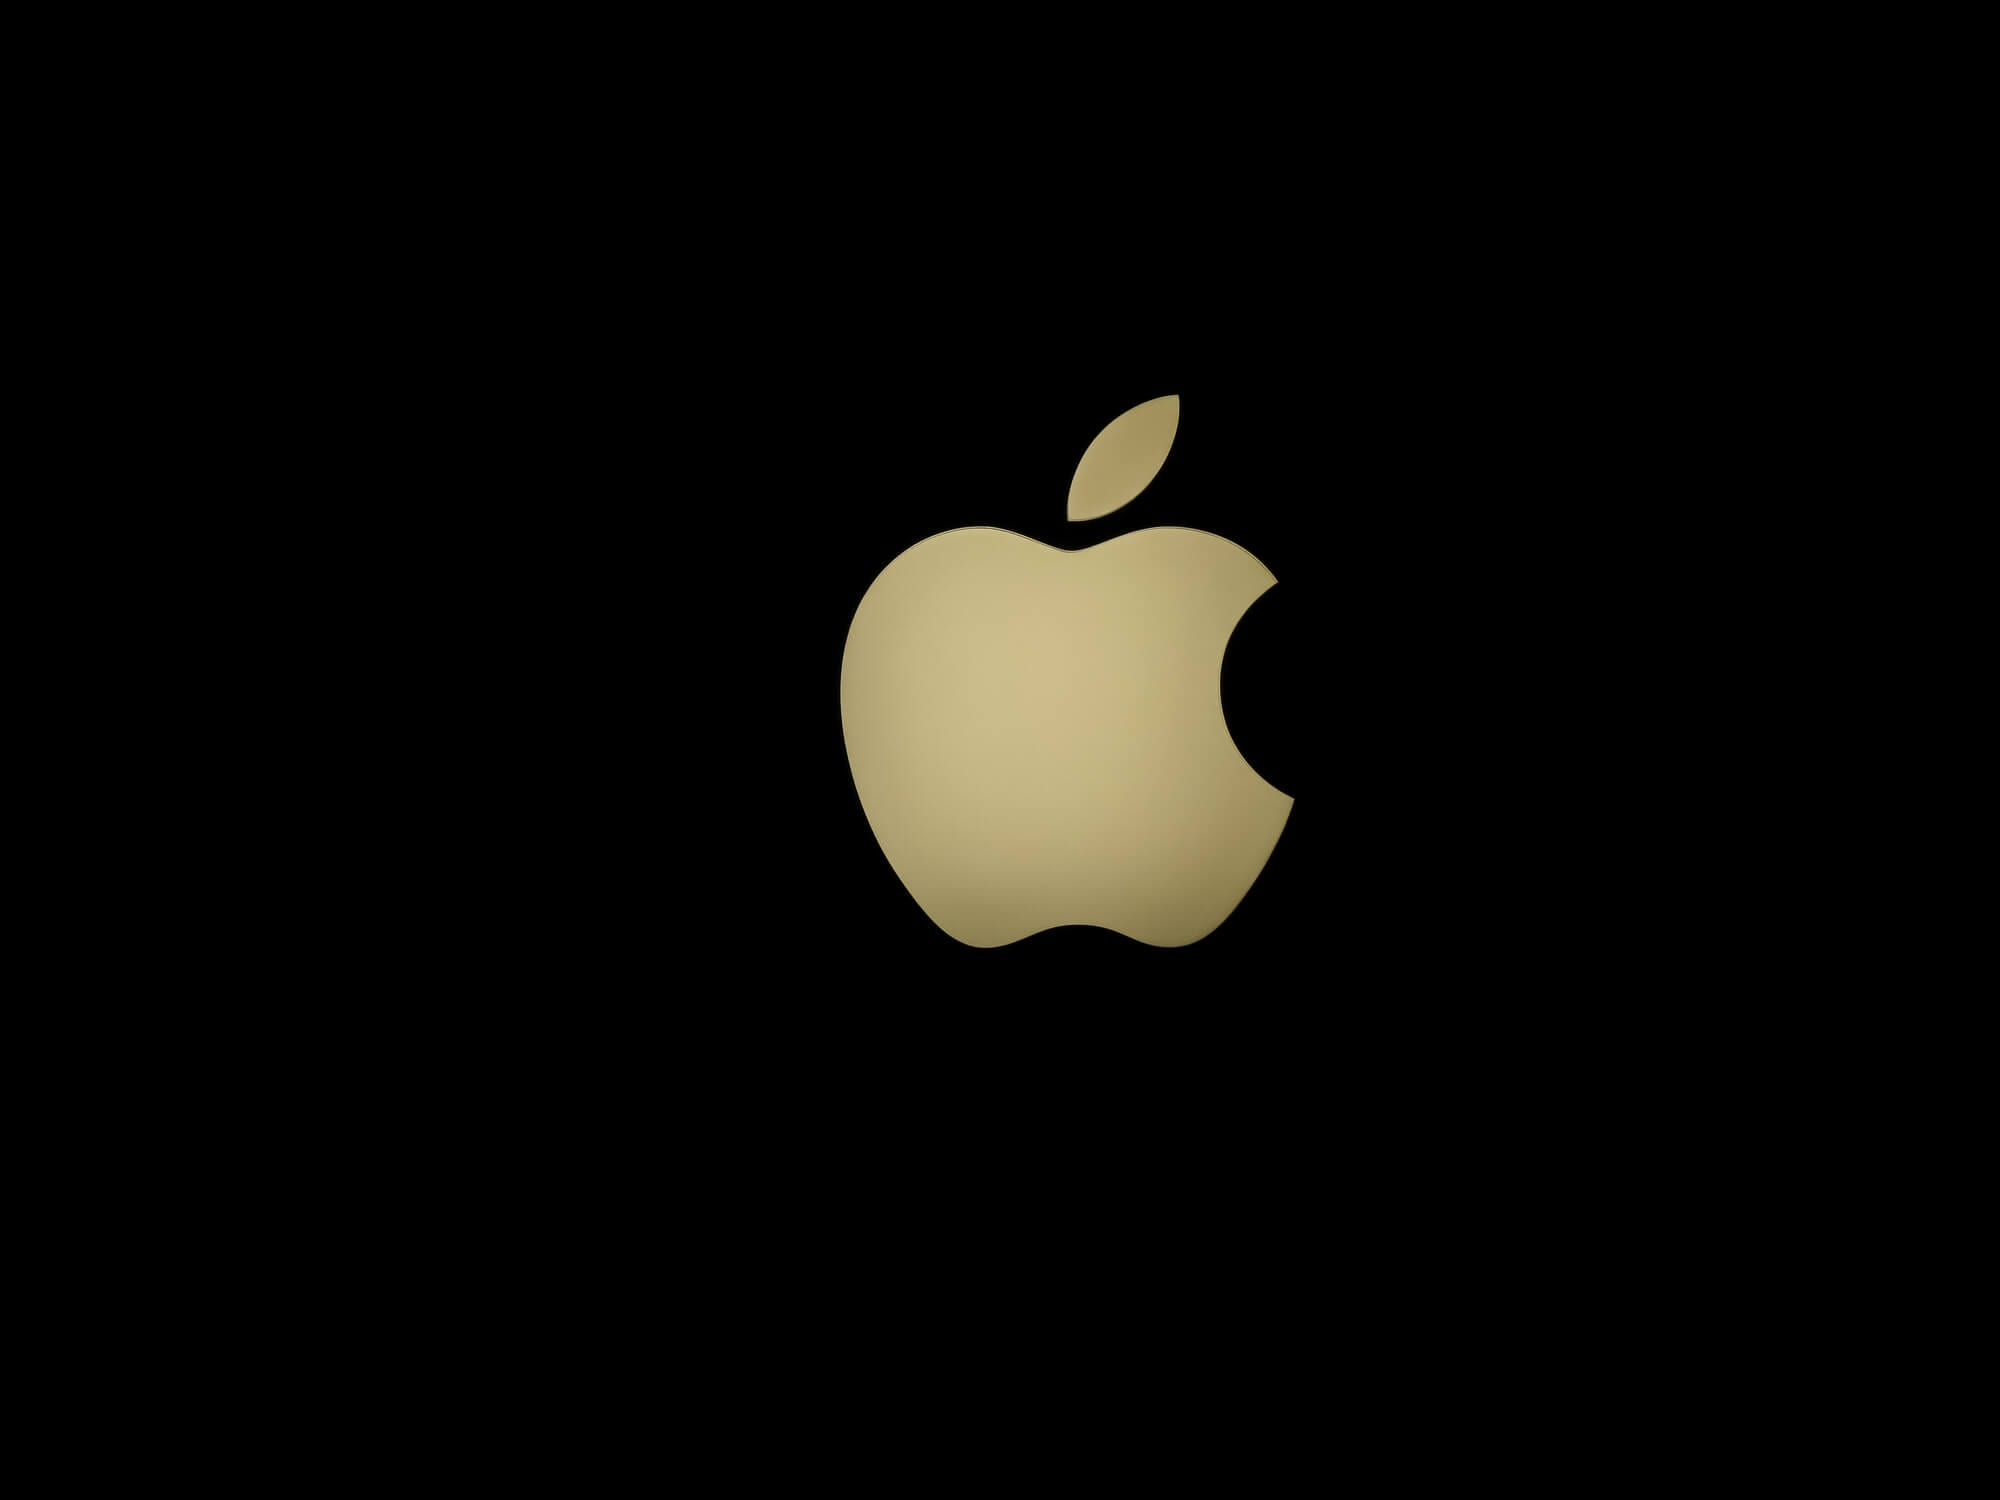 Revisiting The Apple-NeXT Deal And Why It Mattered